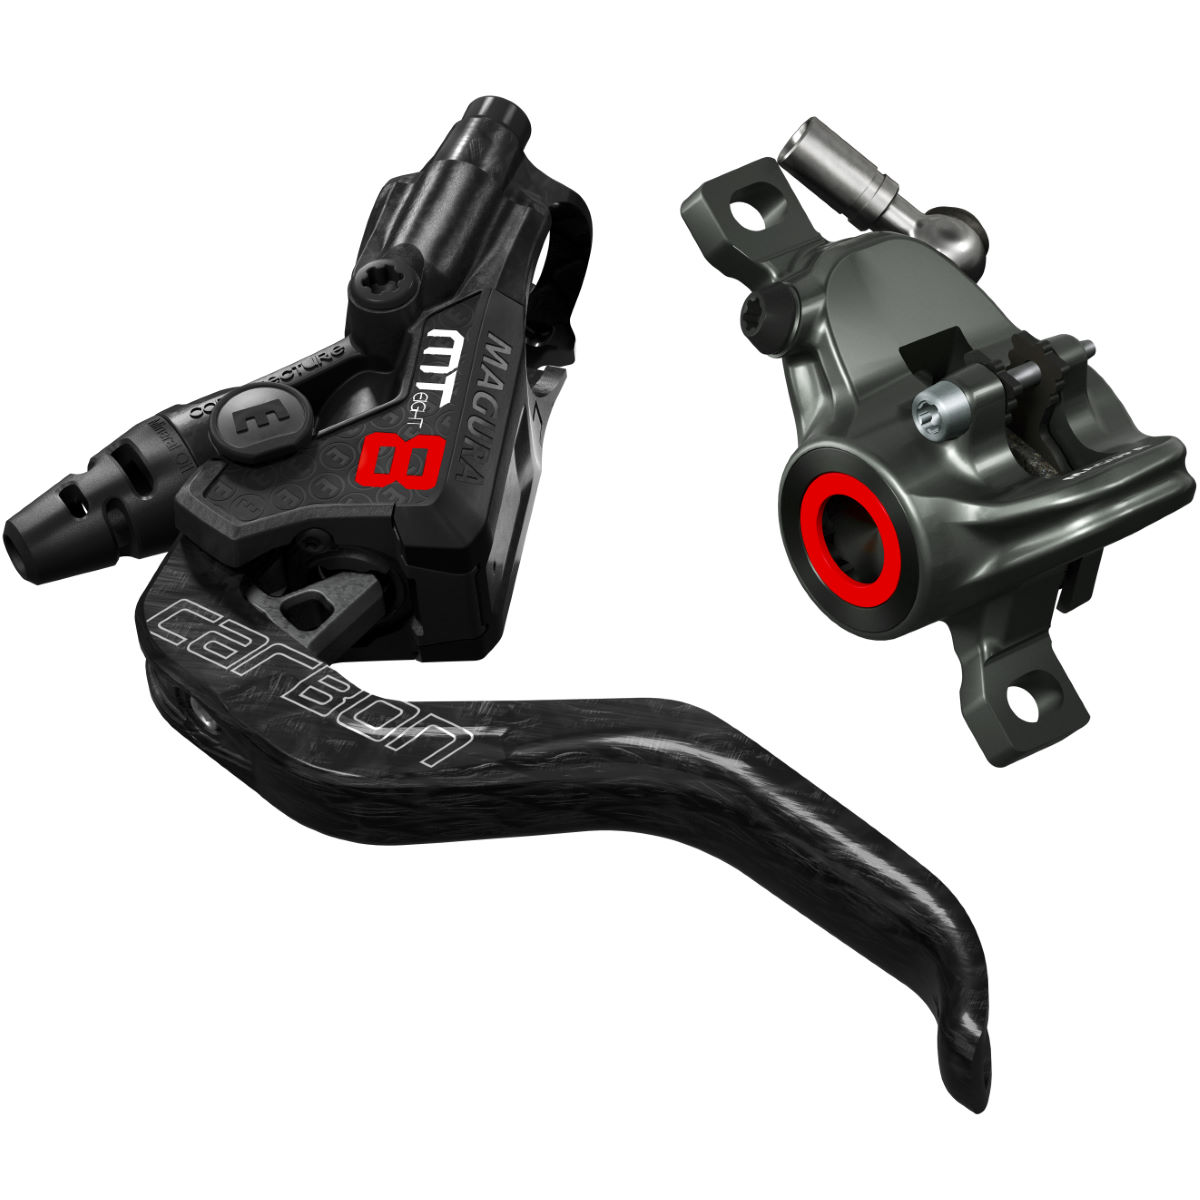 Magura MT8 Carbon Disc Brake   Disc Brake Callipers